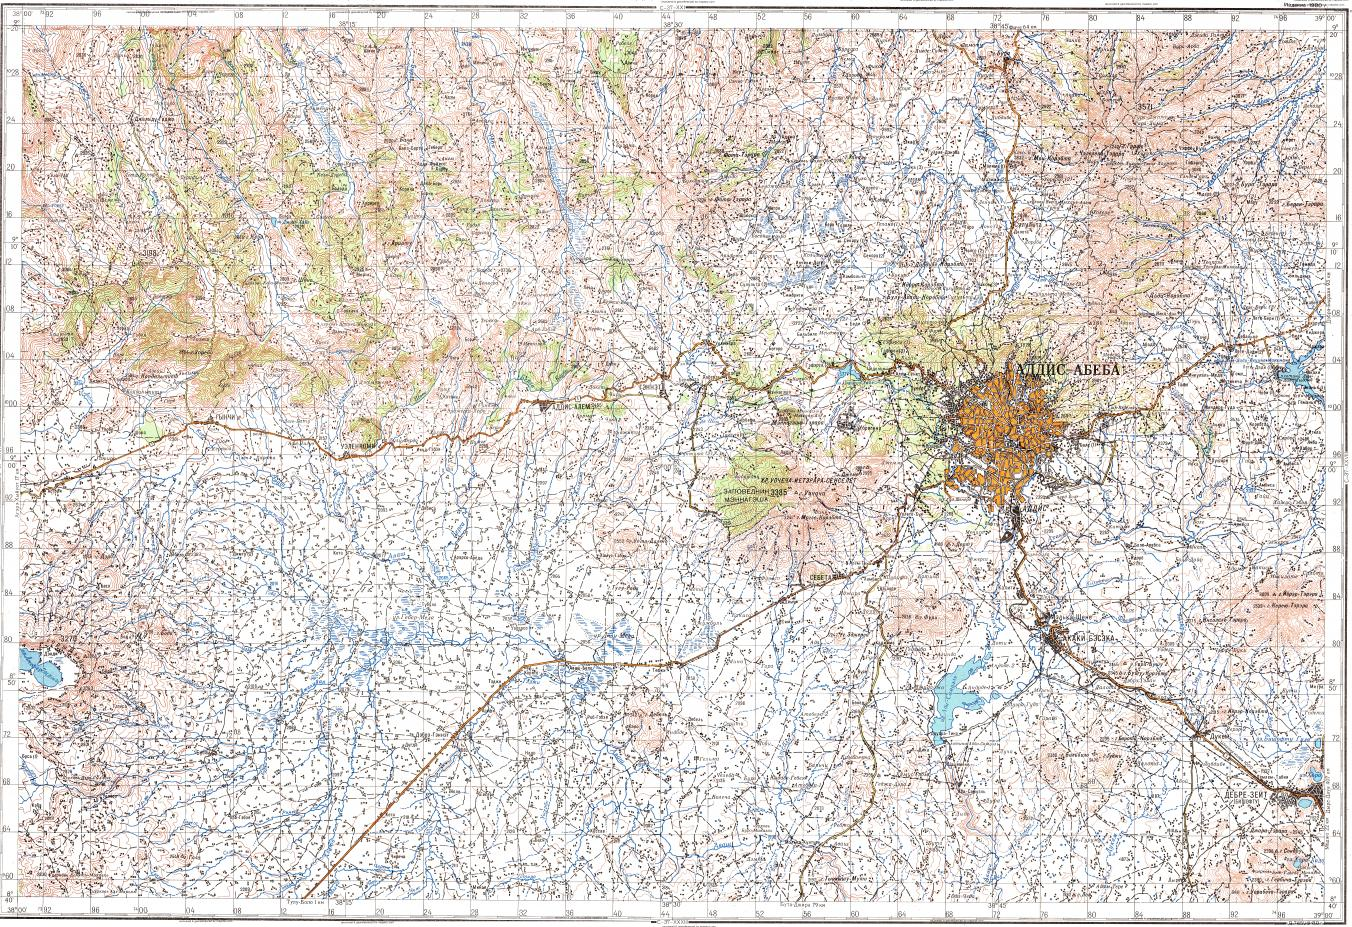 Download topographic map in area of Addis Ababa, Tefki, Galesa ...